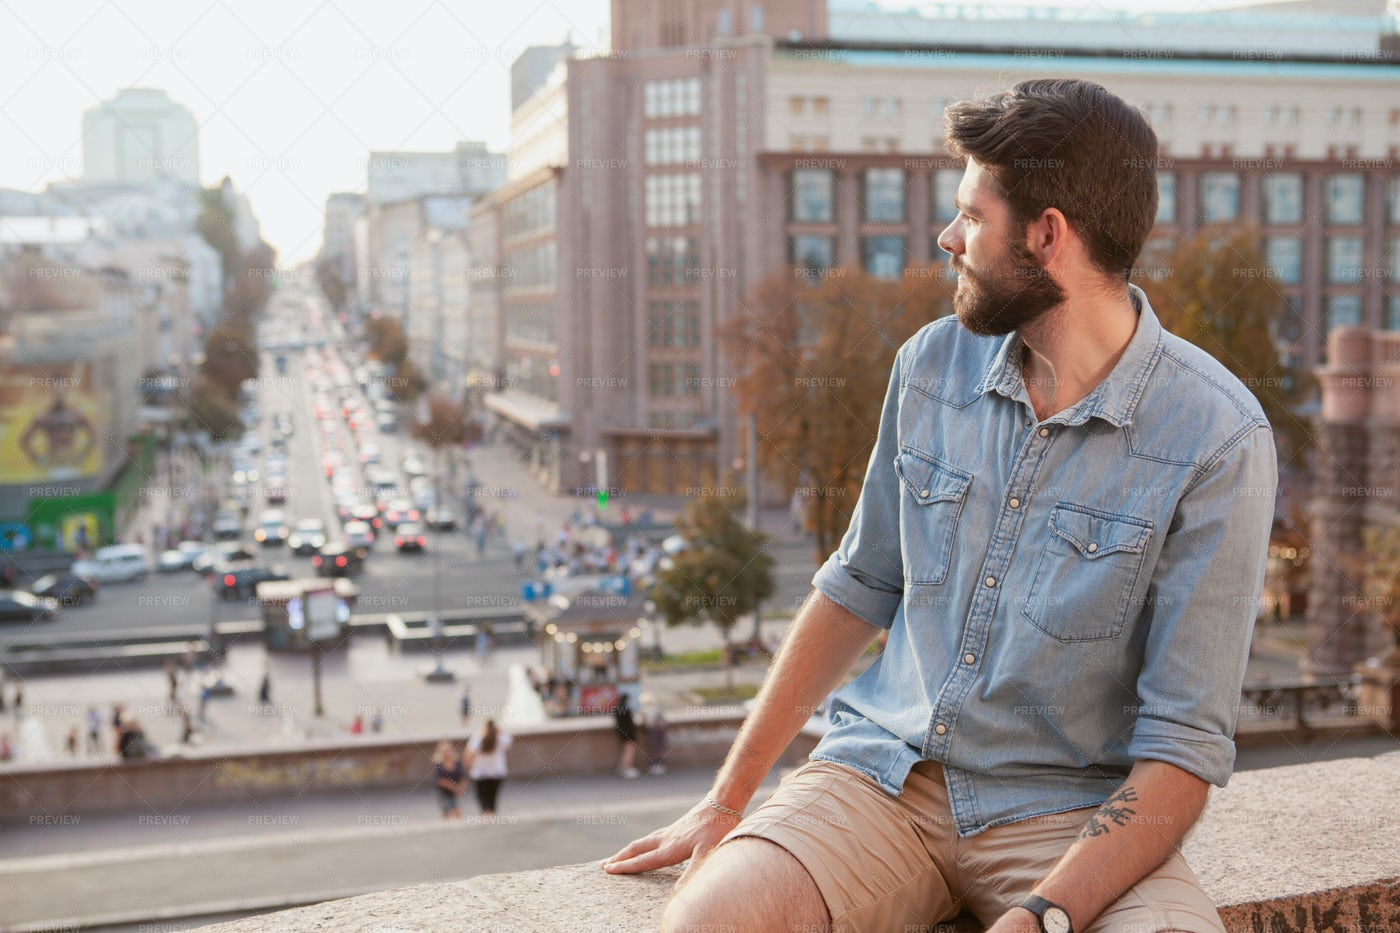 Man On Rooftop Looks At City: Stock Photos